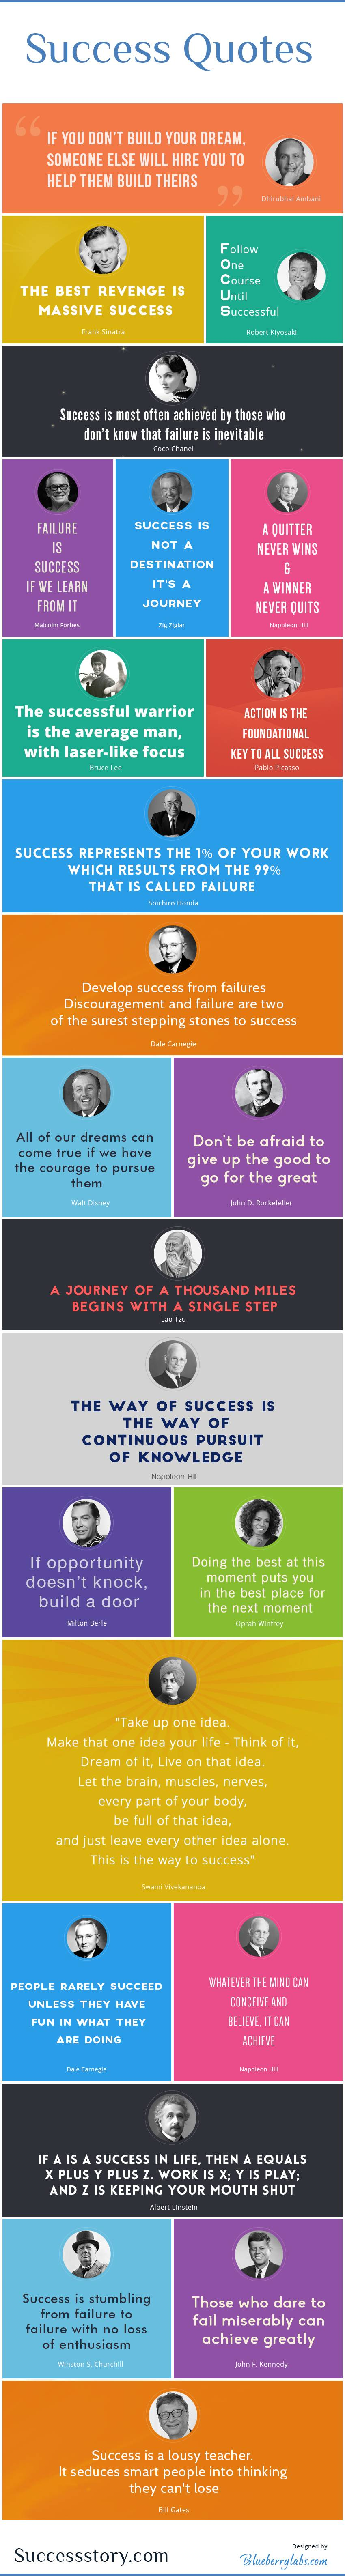 24 Great Quotes About Success